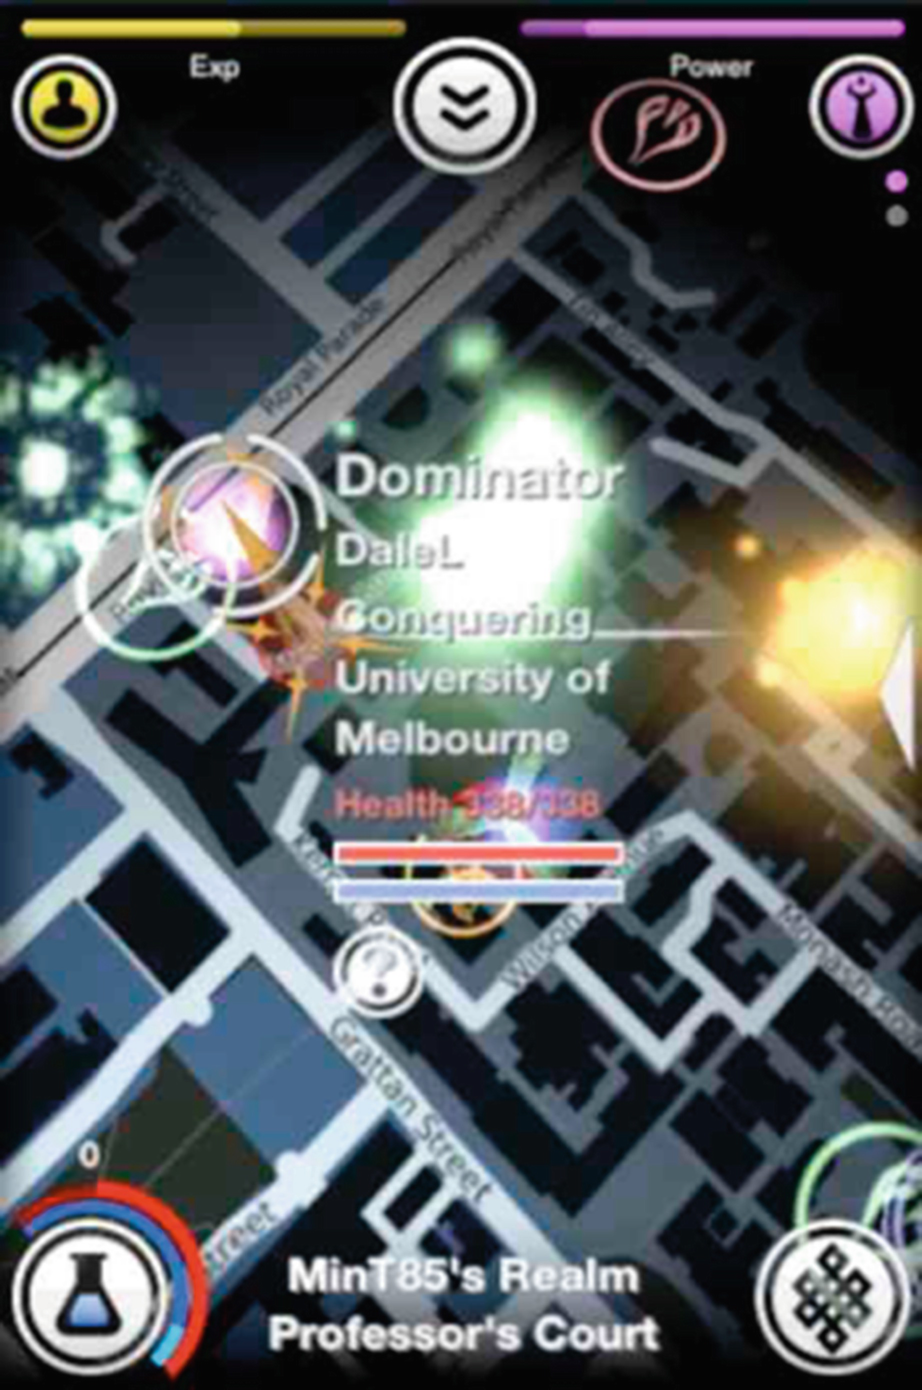 Location-Based Gaming Apps and the Labour of Play   SpringerLink